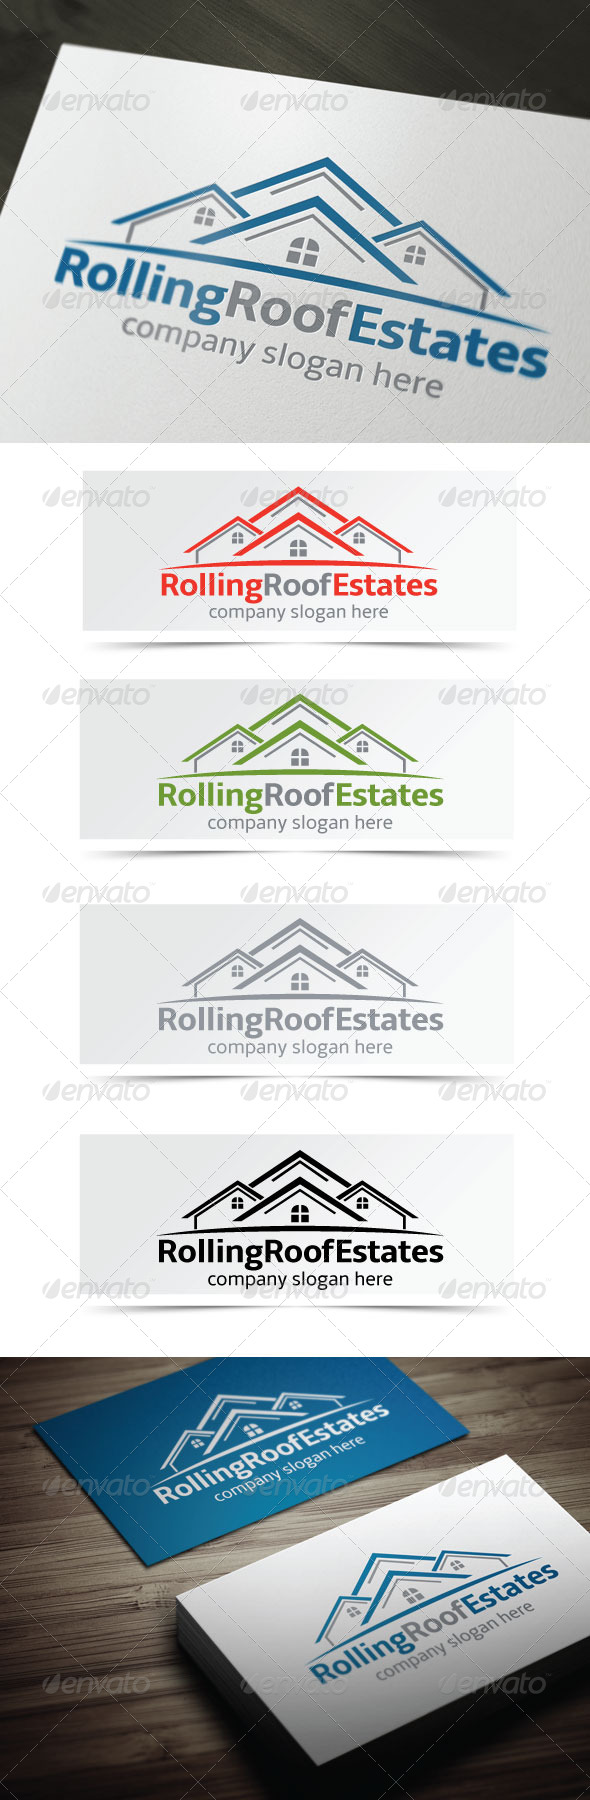 Rolling Roof Estates - Buildings Logo Templates